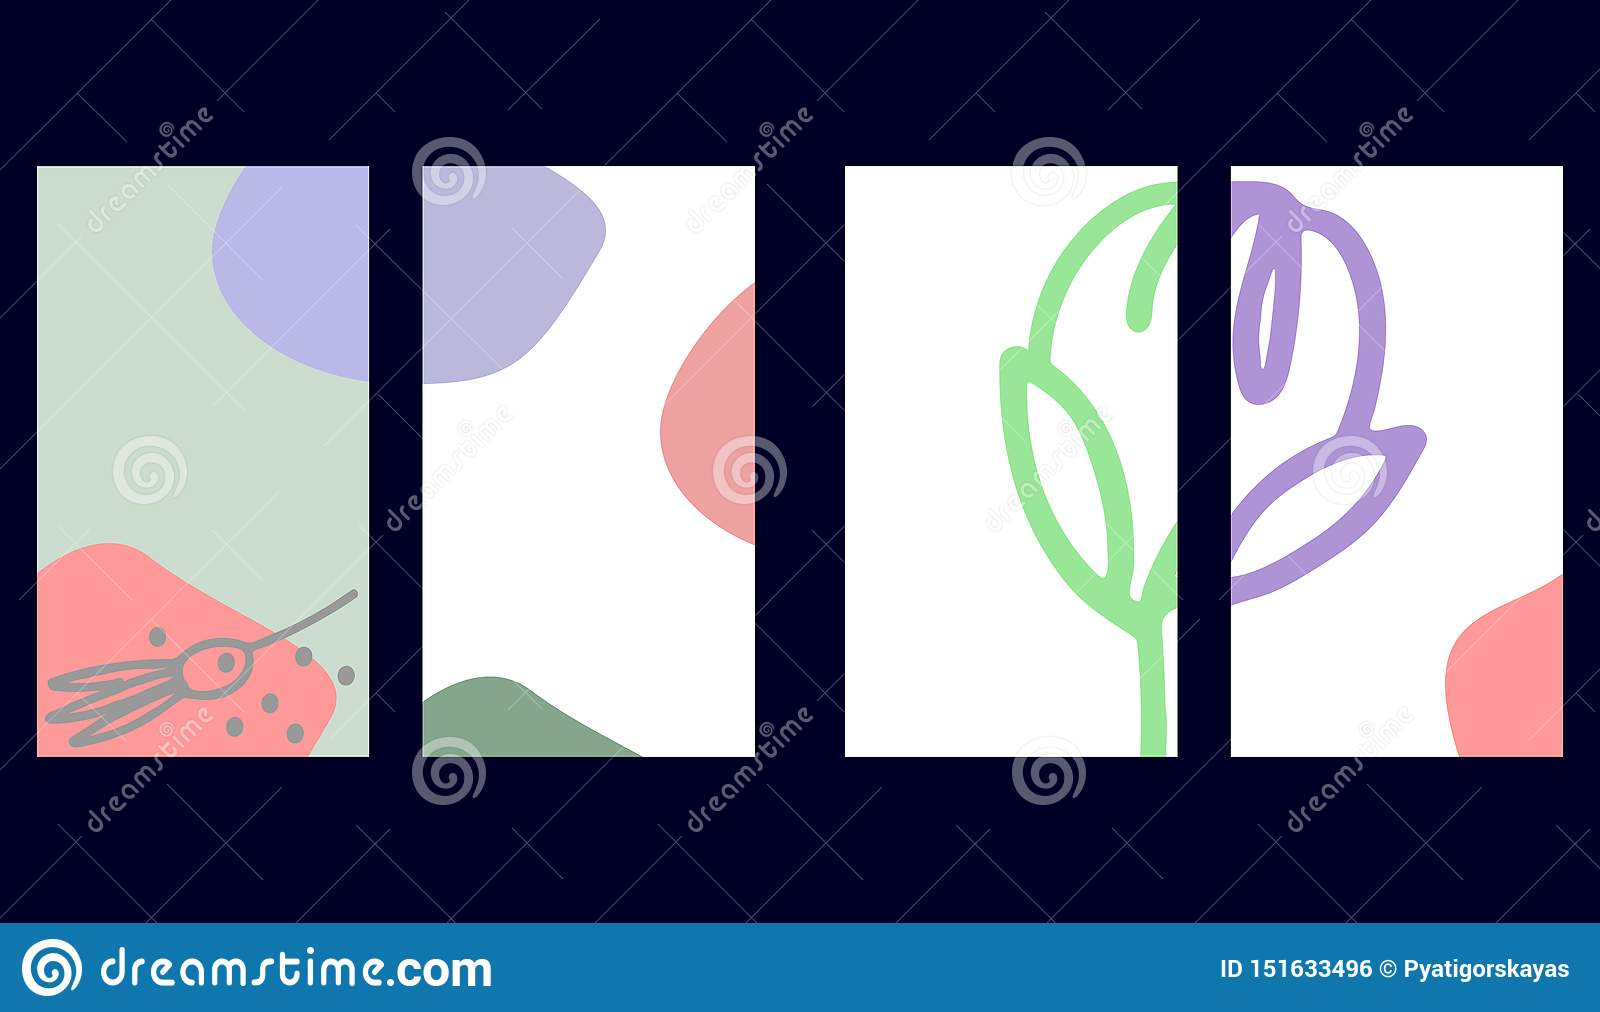 Set of social media stories templates. Floral backgrounds in pastel colors